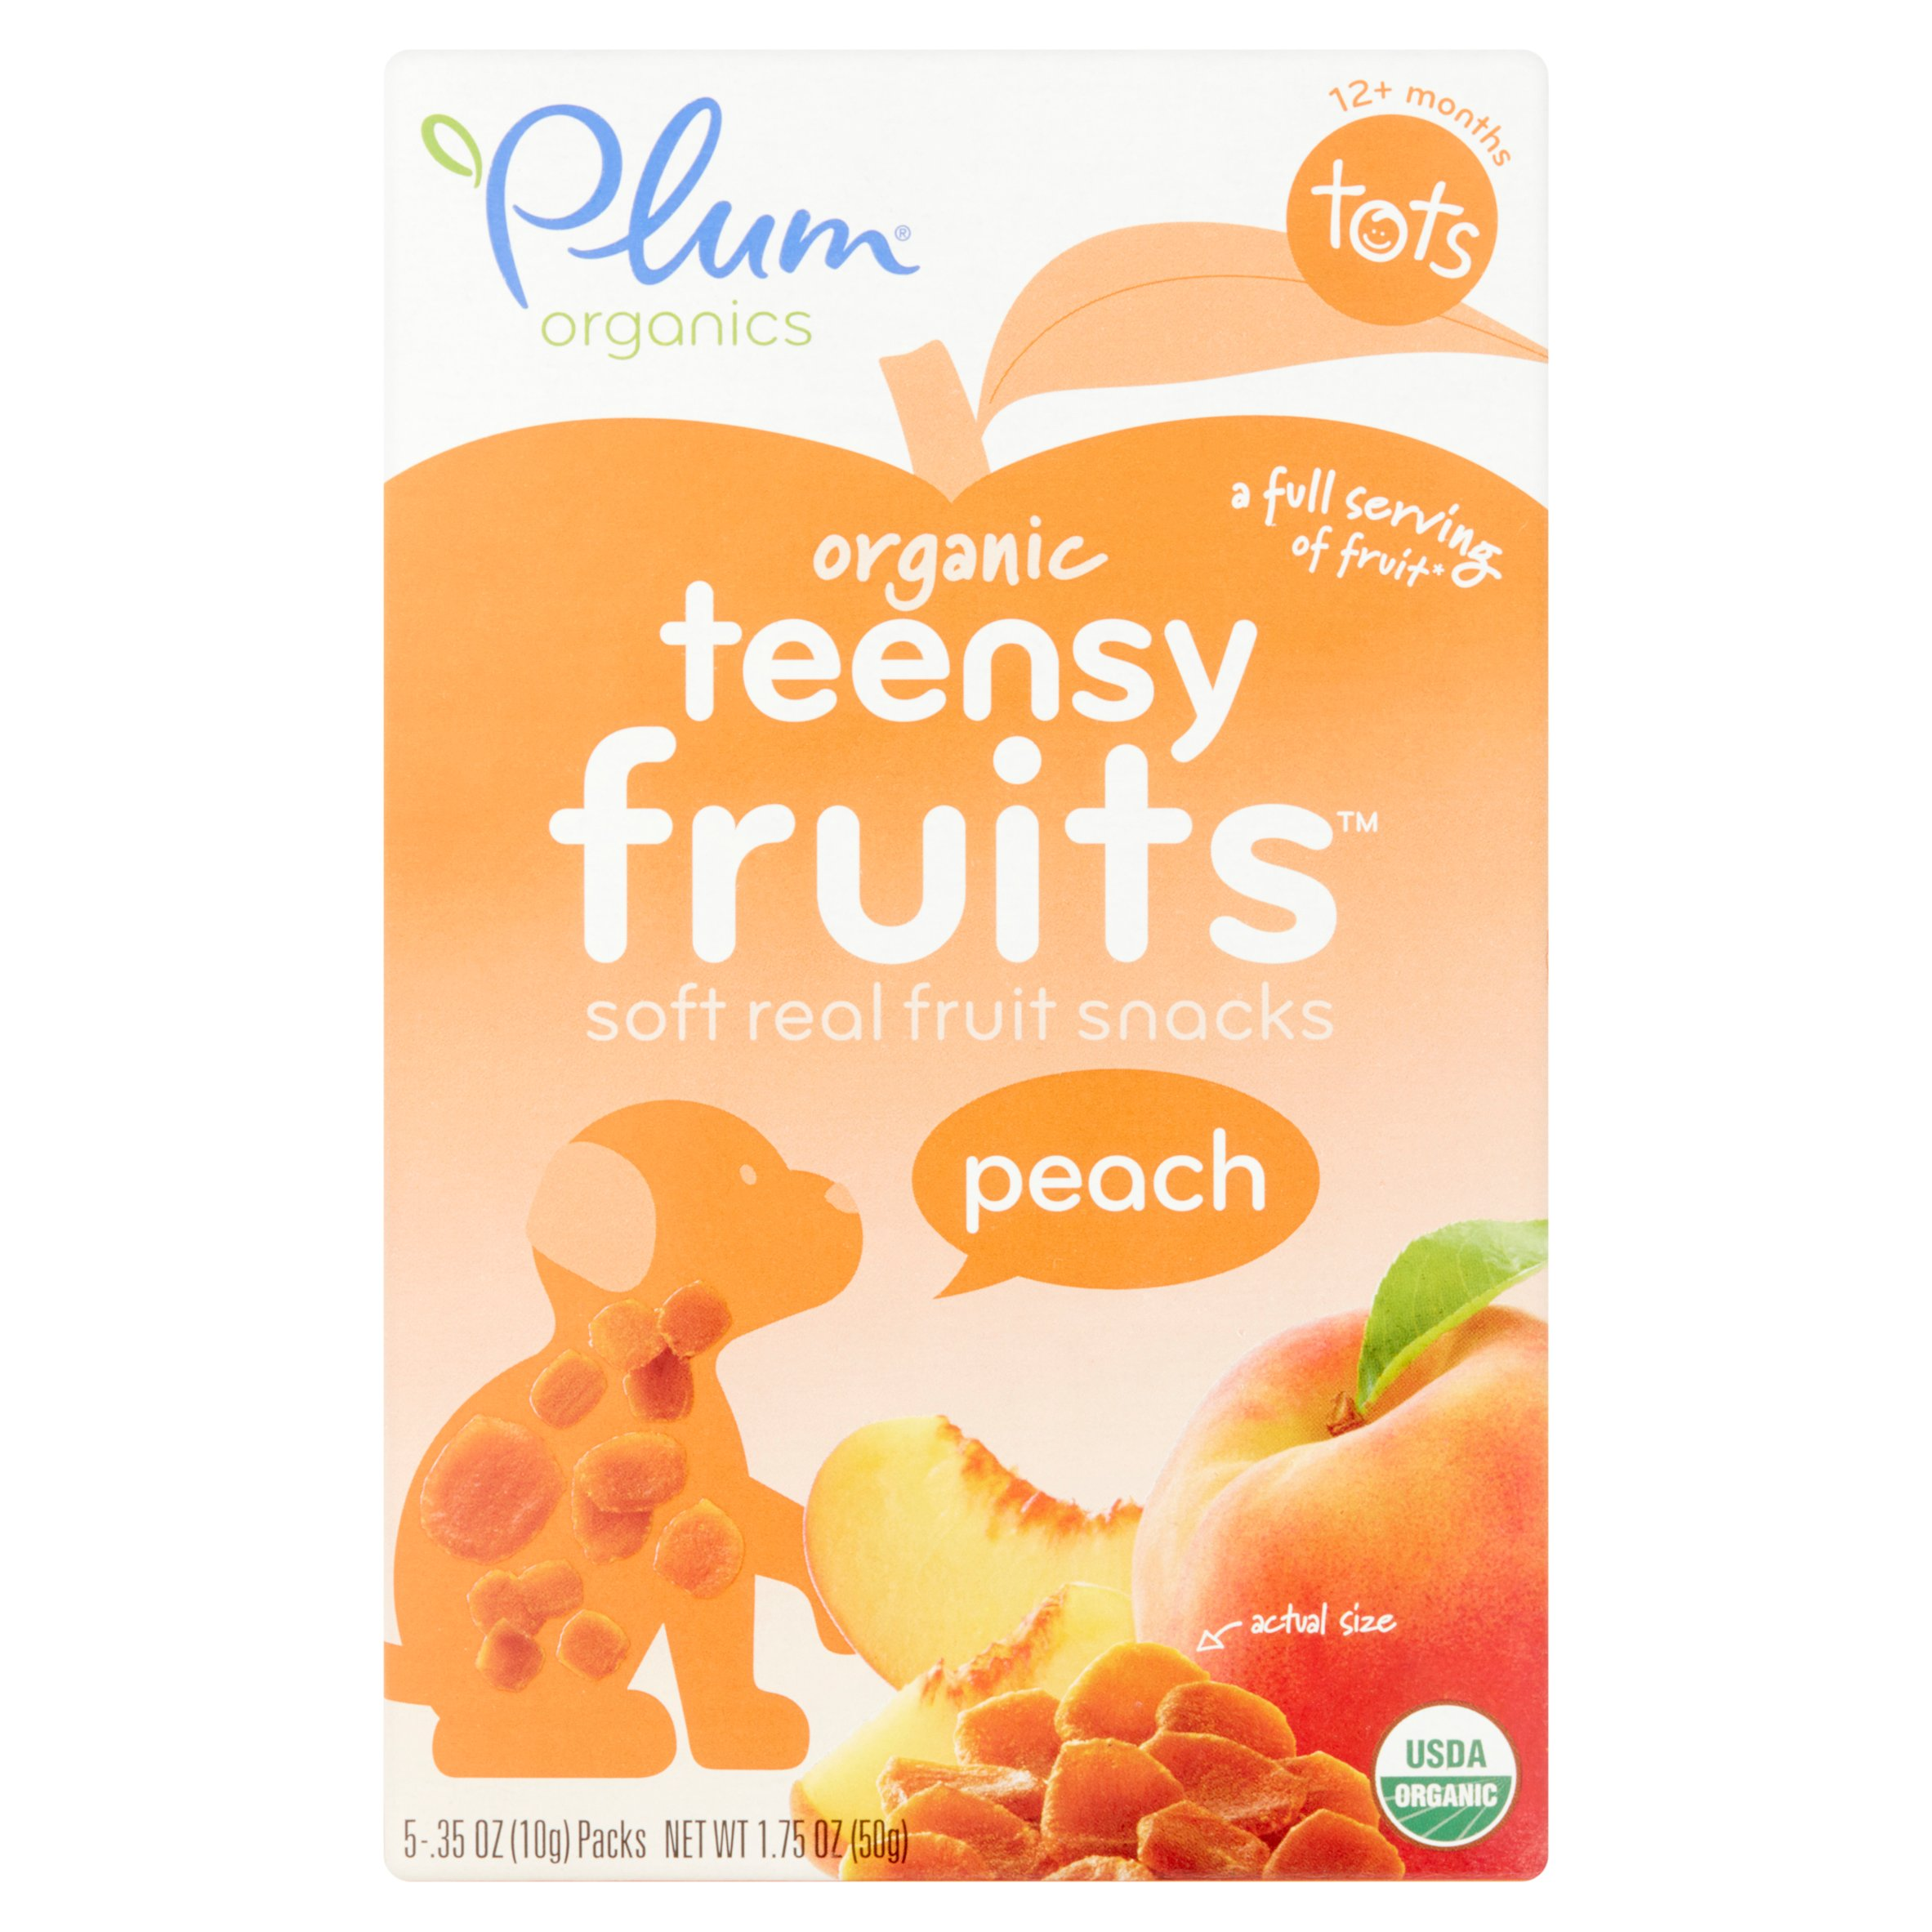 Plum Organics Teensy Fruits Peach Soft Real Fruit Snacks Tots 12+ Months, 5 count, .35 oz, 8 pack